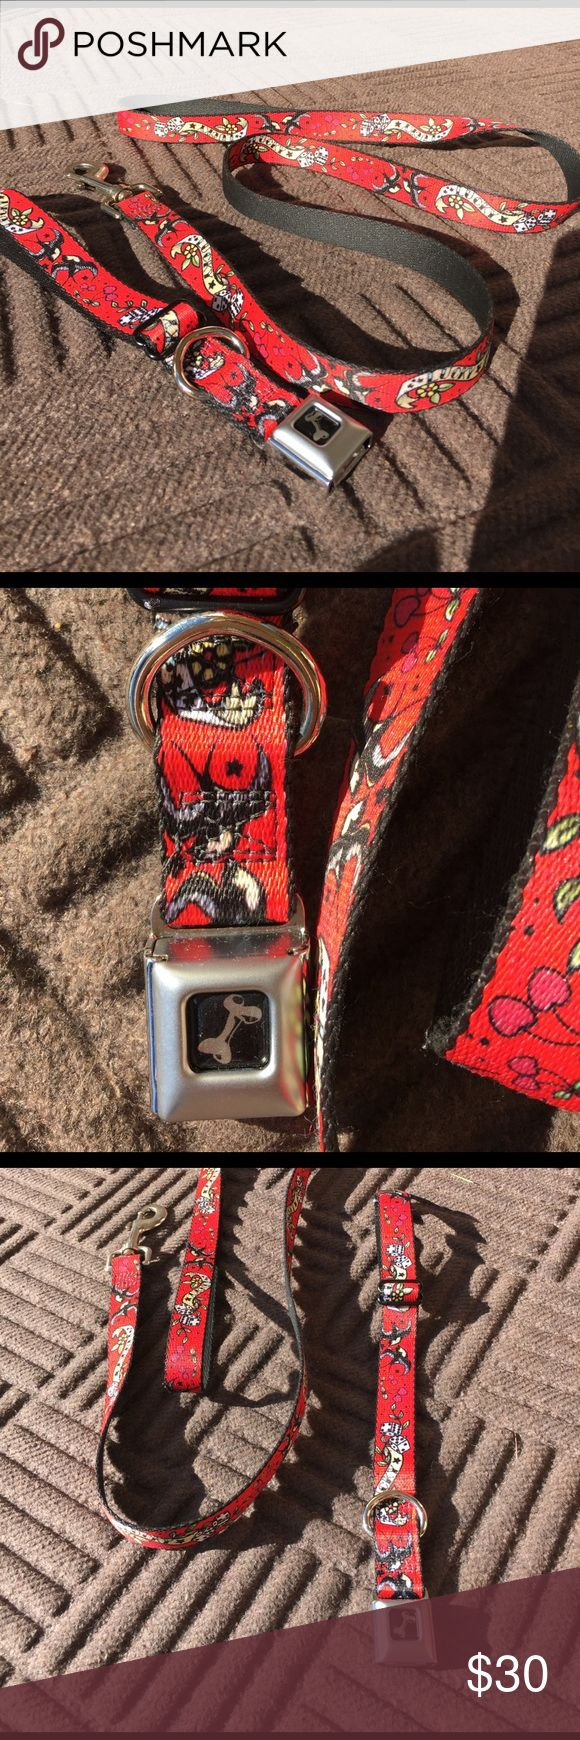 Lucky Dog collar and Leash! Red with fun Detail! On back of collar buckle it says buckle-down seat belt buckle collar was designed by Buckle-Down Inc.  Made in the USA Other